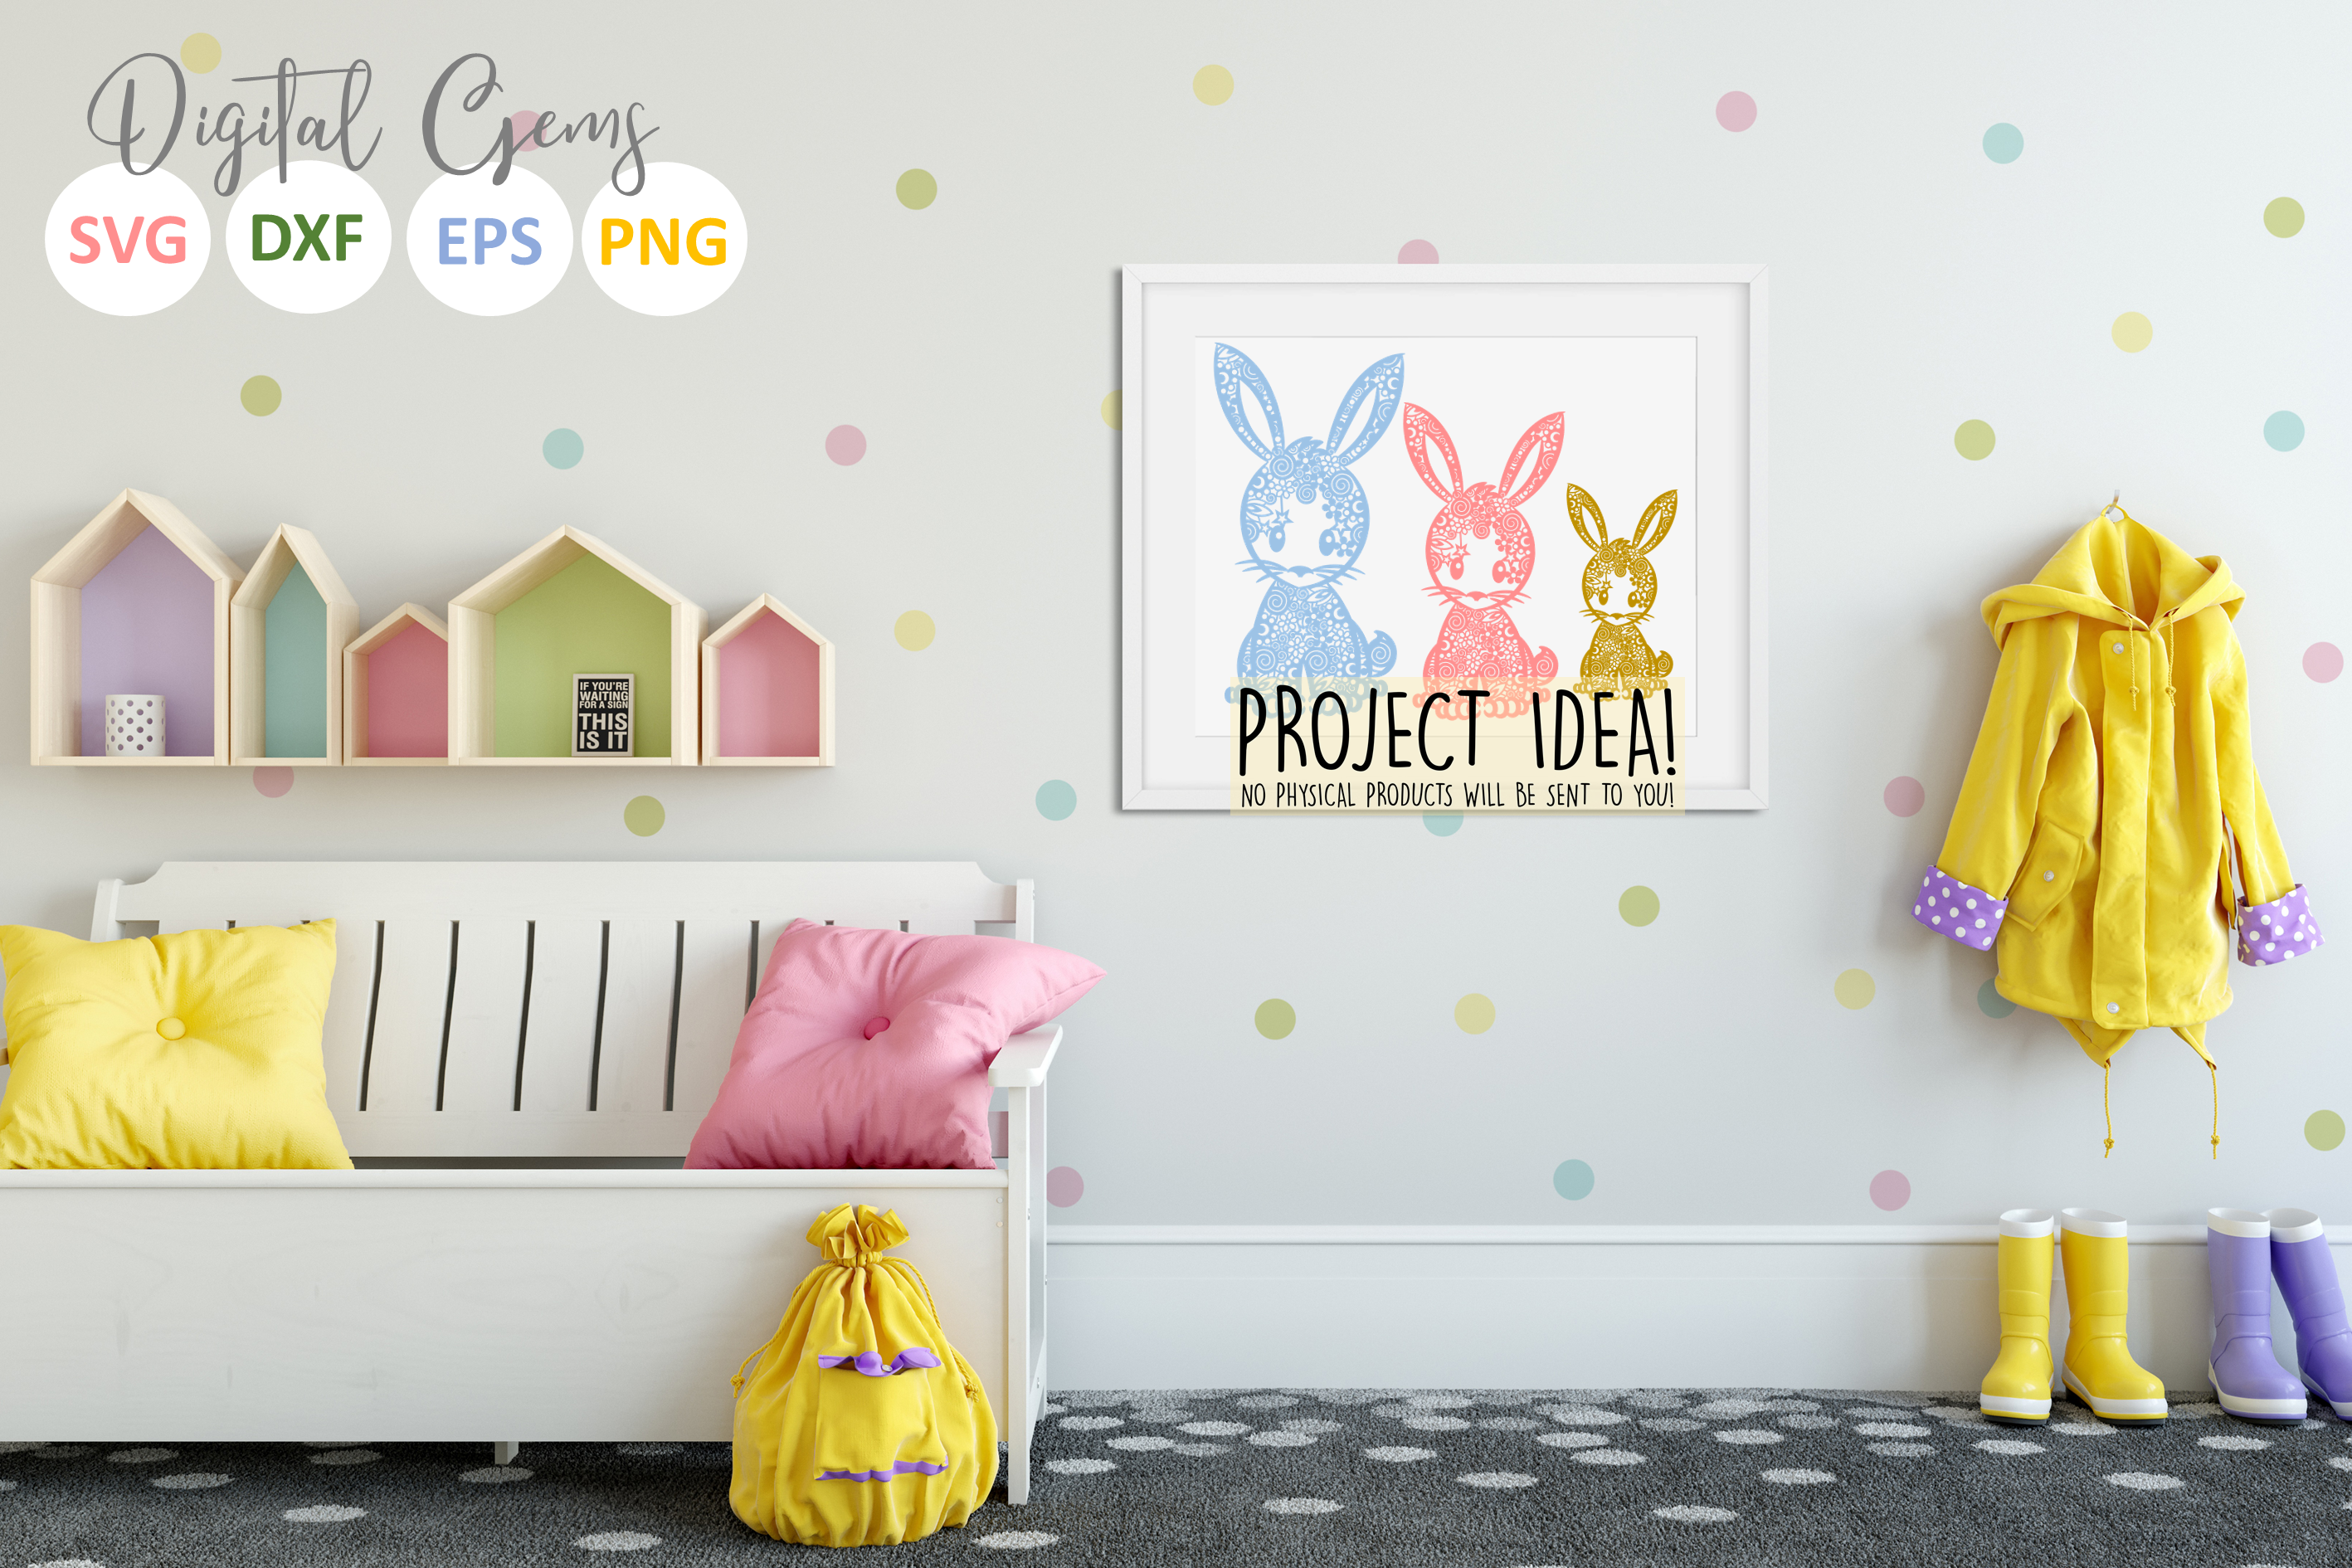 Bunny Rabbit paper cut SVG / DXF / EPS / PNG files example image 4